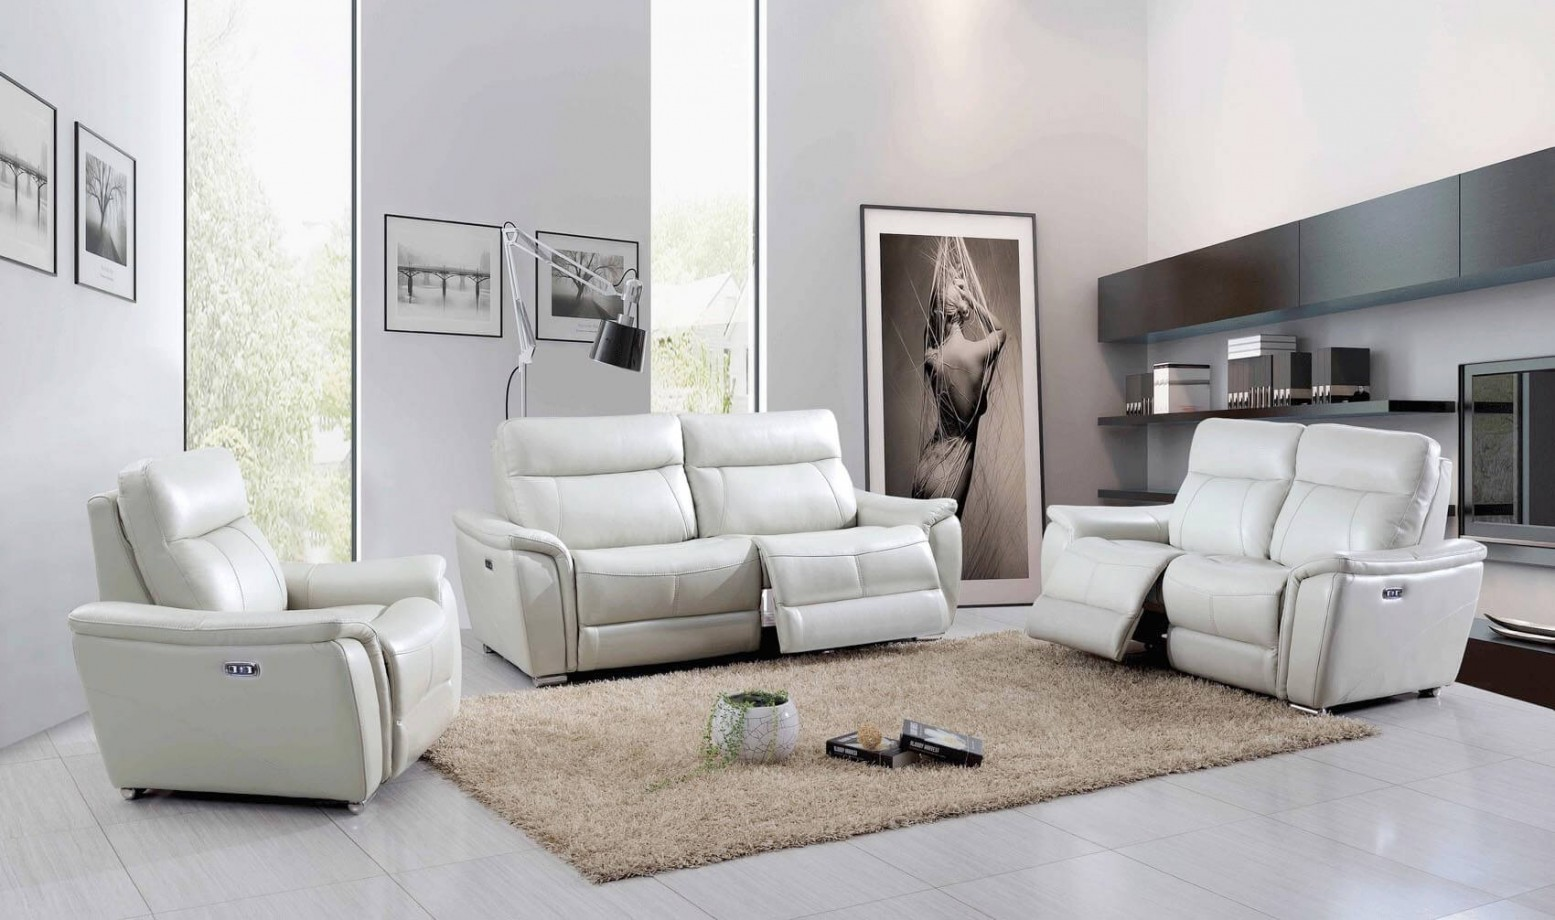 1705 Leather Eco Leather Living Room Set W Recliner By Esf